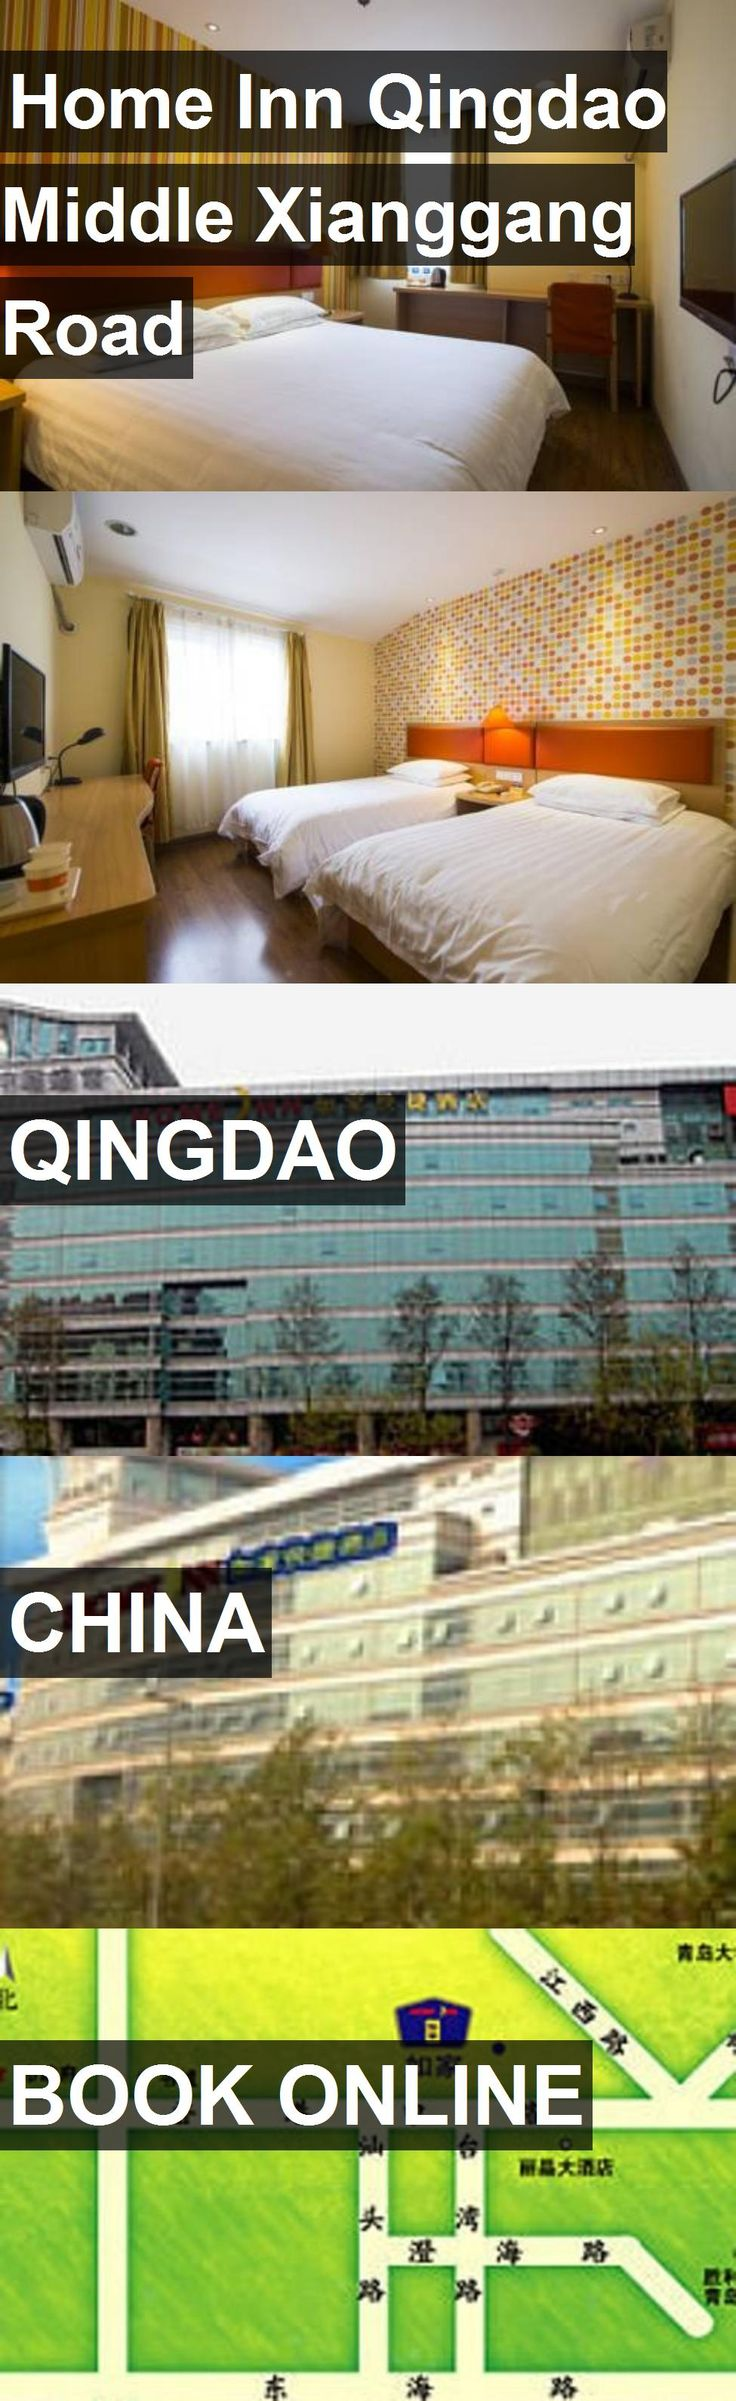 Hotel Home Inn Qingdao Middle Xianggang Road in Qingdao, China. For more information, photos, reviews and best prices please follow the link. #China #Qingdao #travel #vacation #hotel